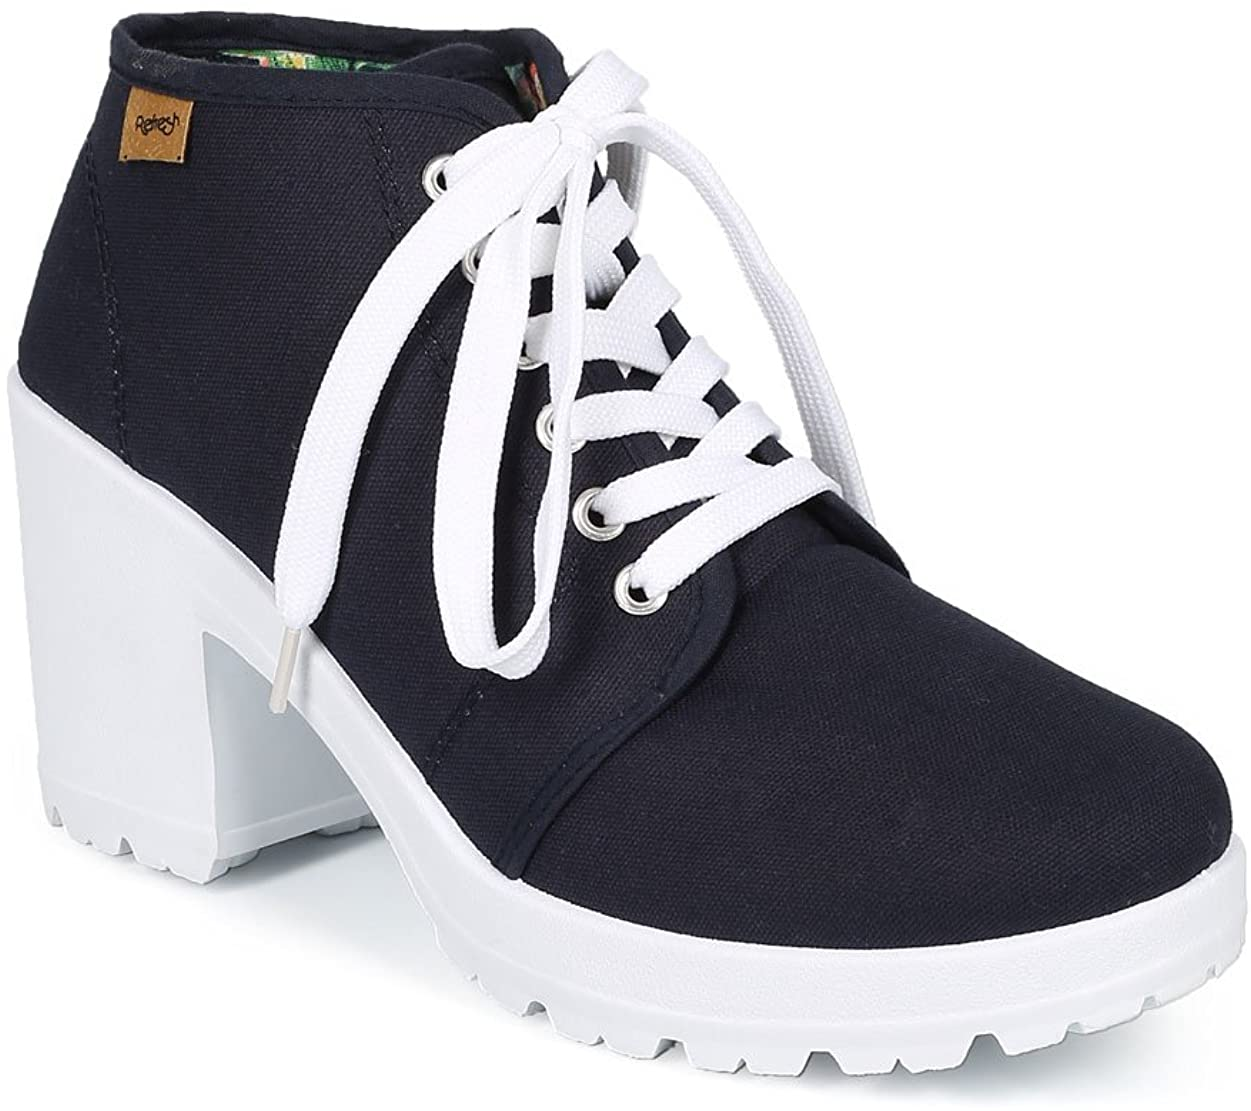 Women Canvas Lace Up Lug Sole Chunky Heel Ankle Bootie CH11 - Navy